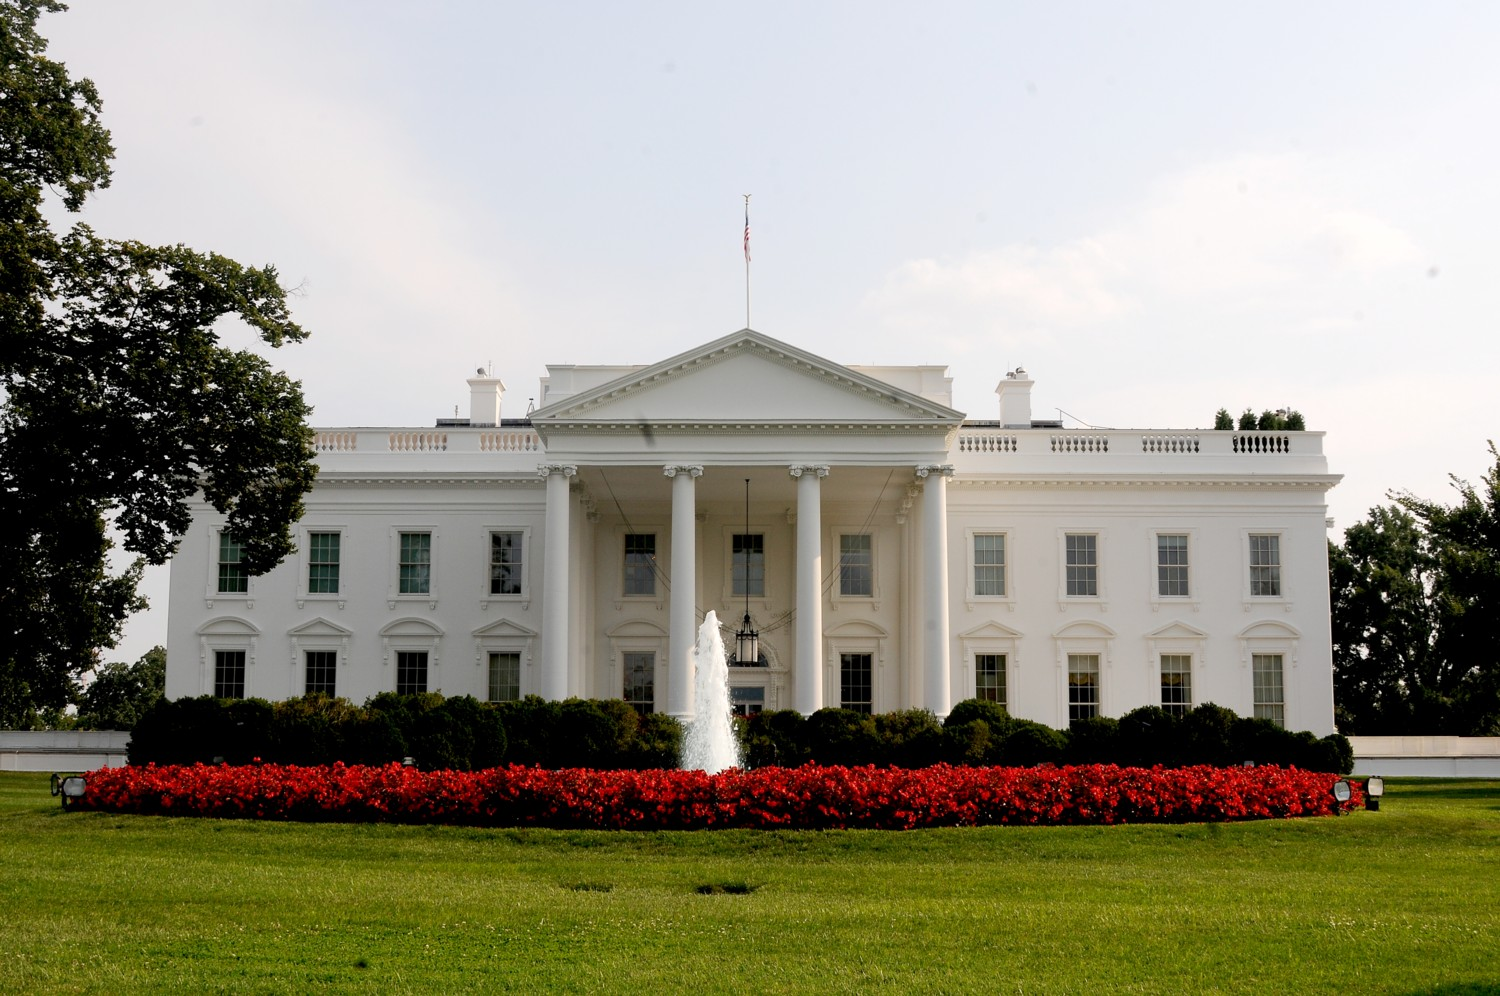 White house hosts fall garden tours oct 18 19 for The white housse